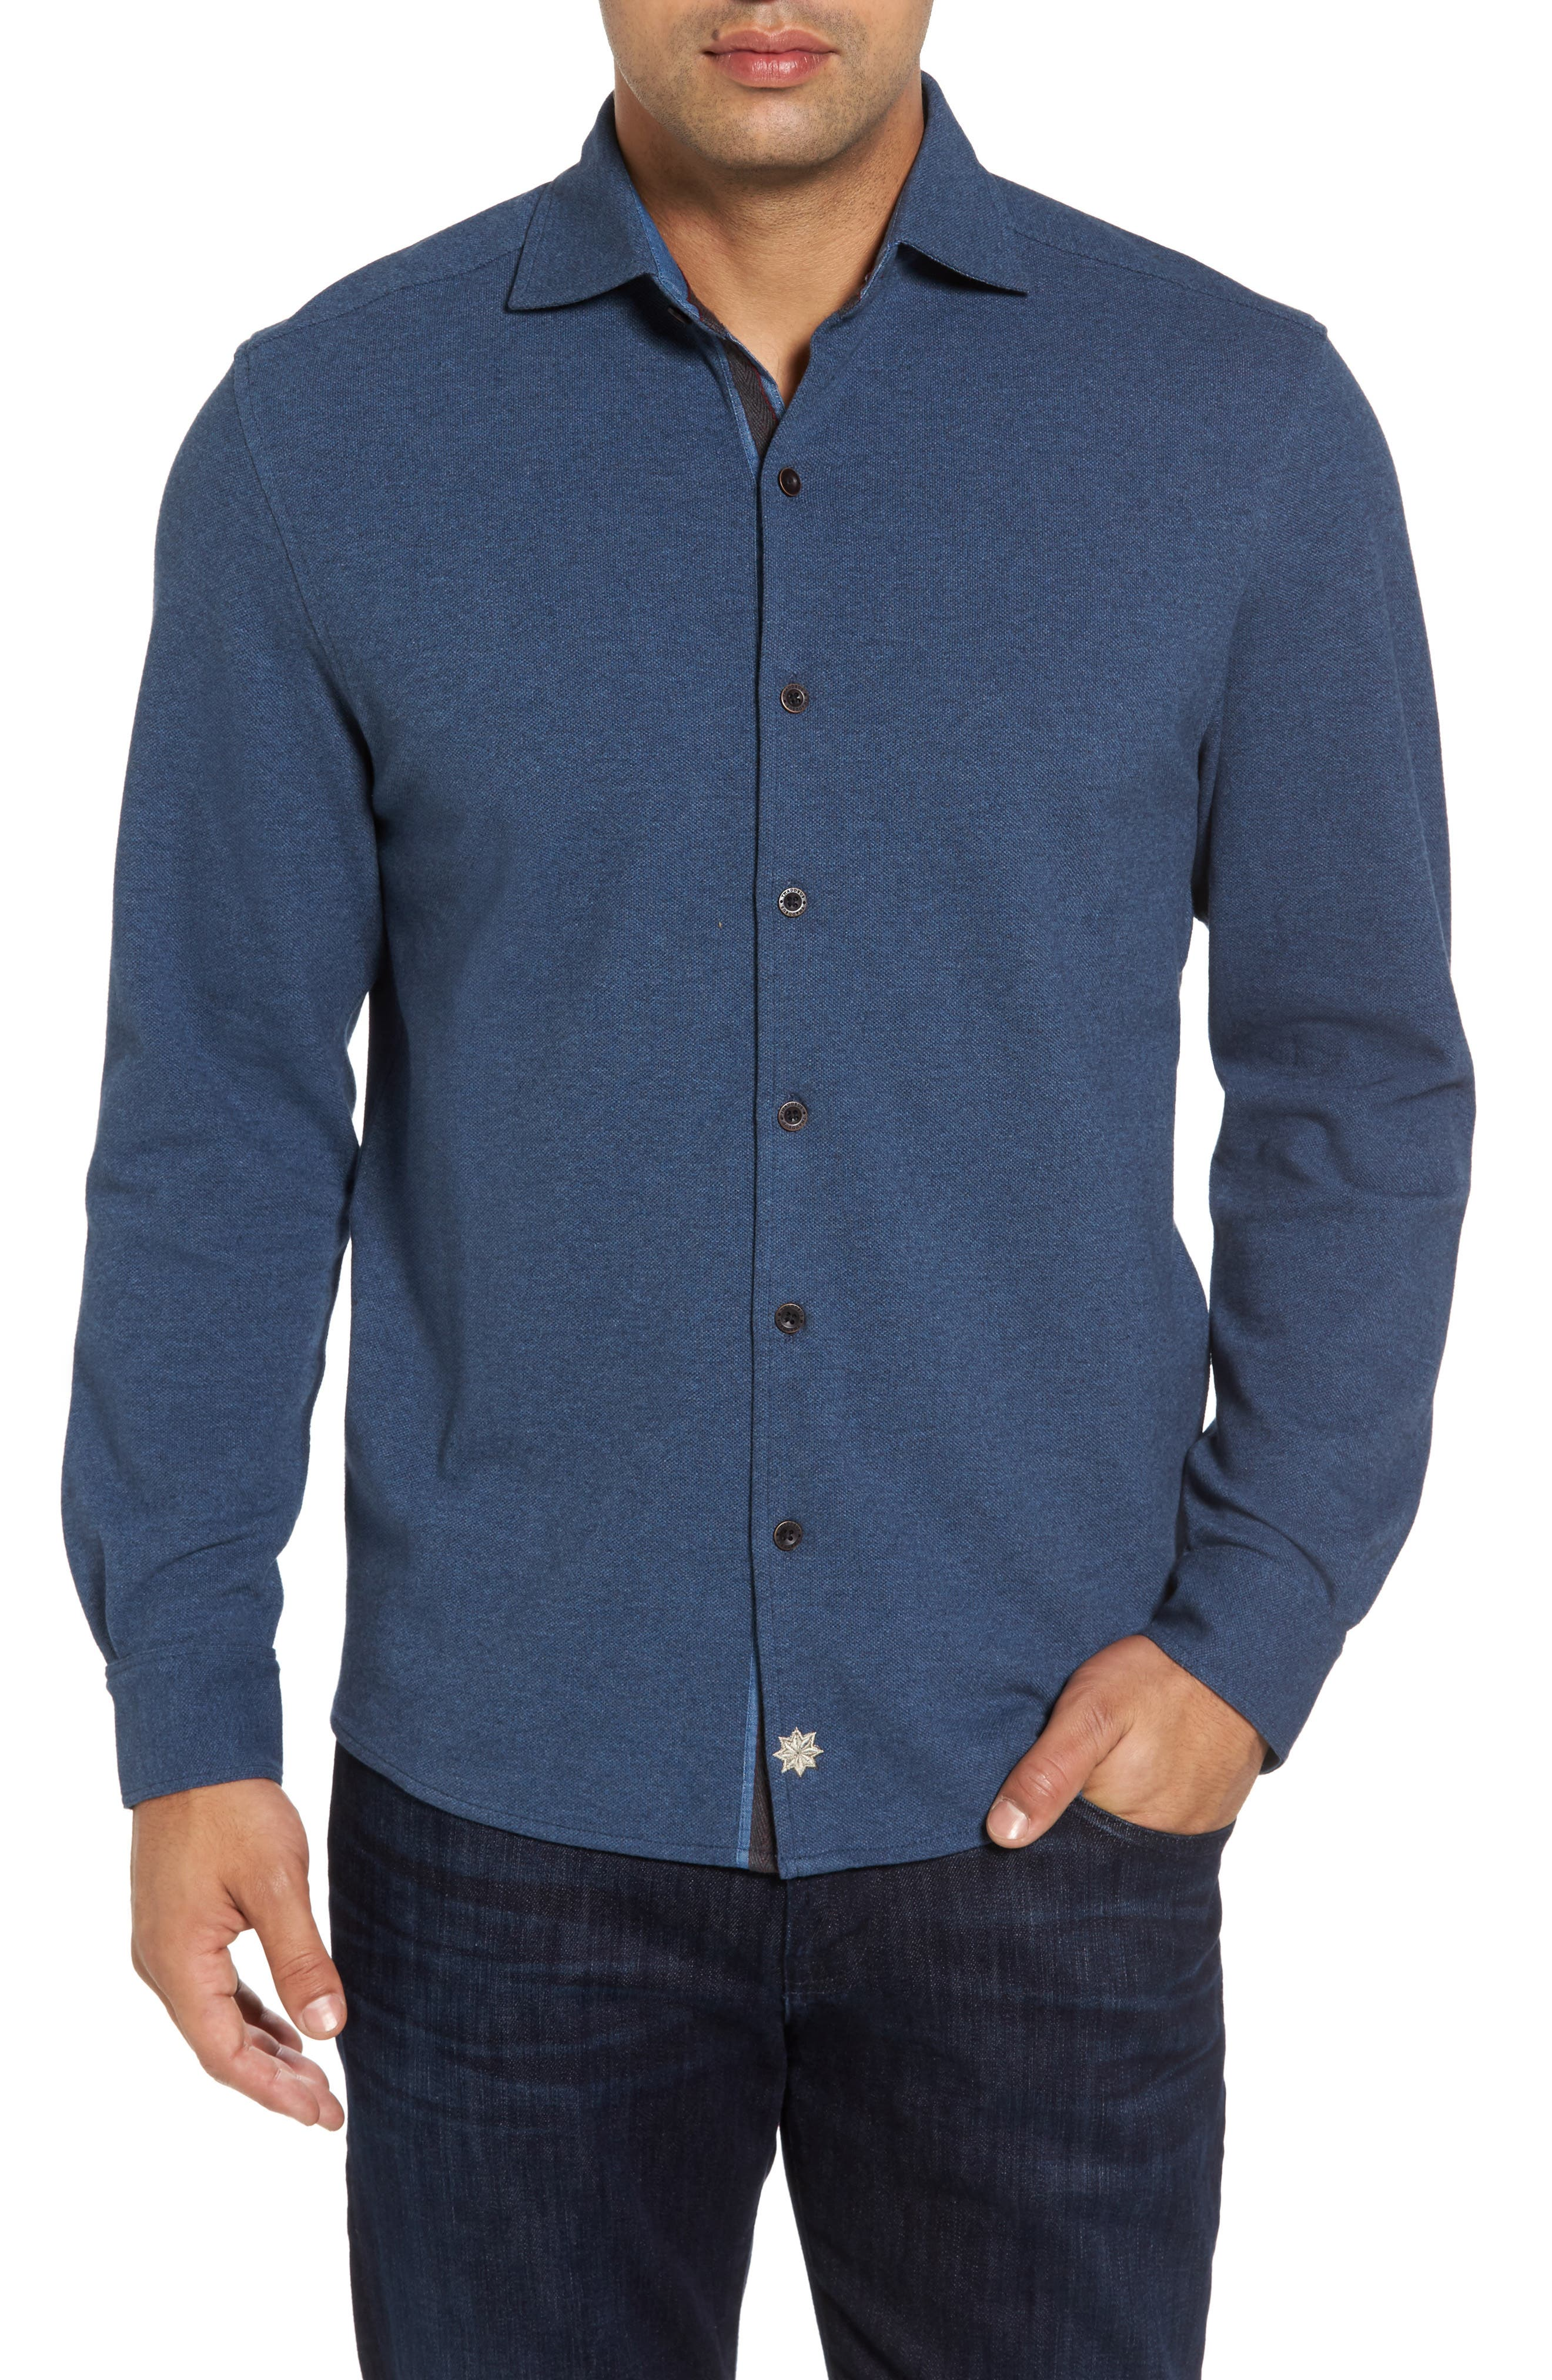 Alternate Image 1 Selected - Thaddeus Shandy Heathered Knit Sport Shirt